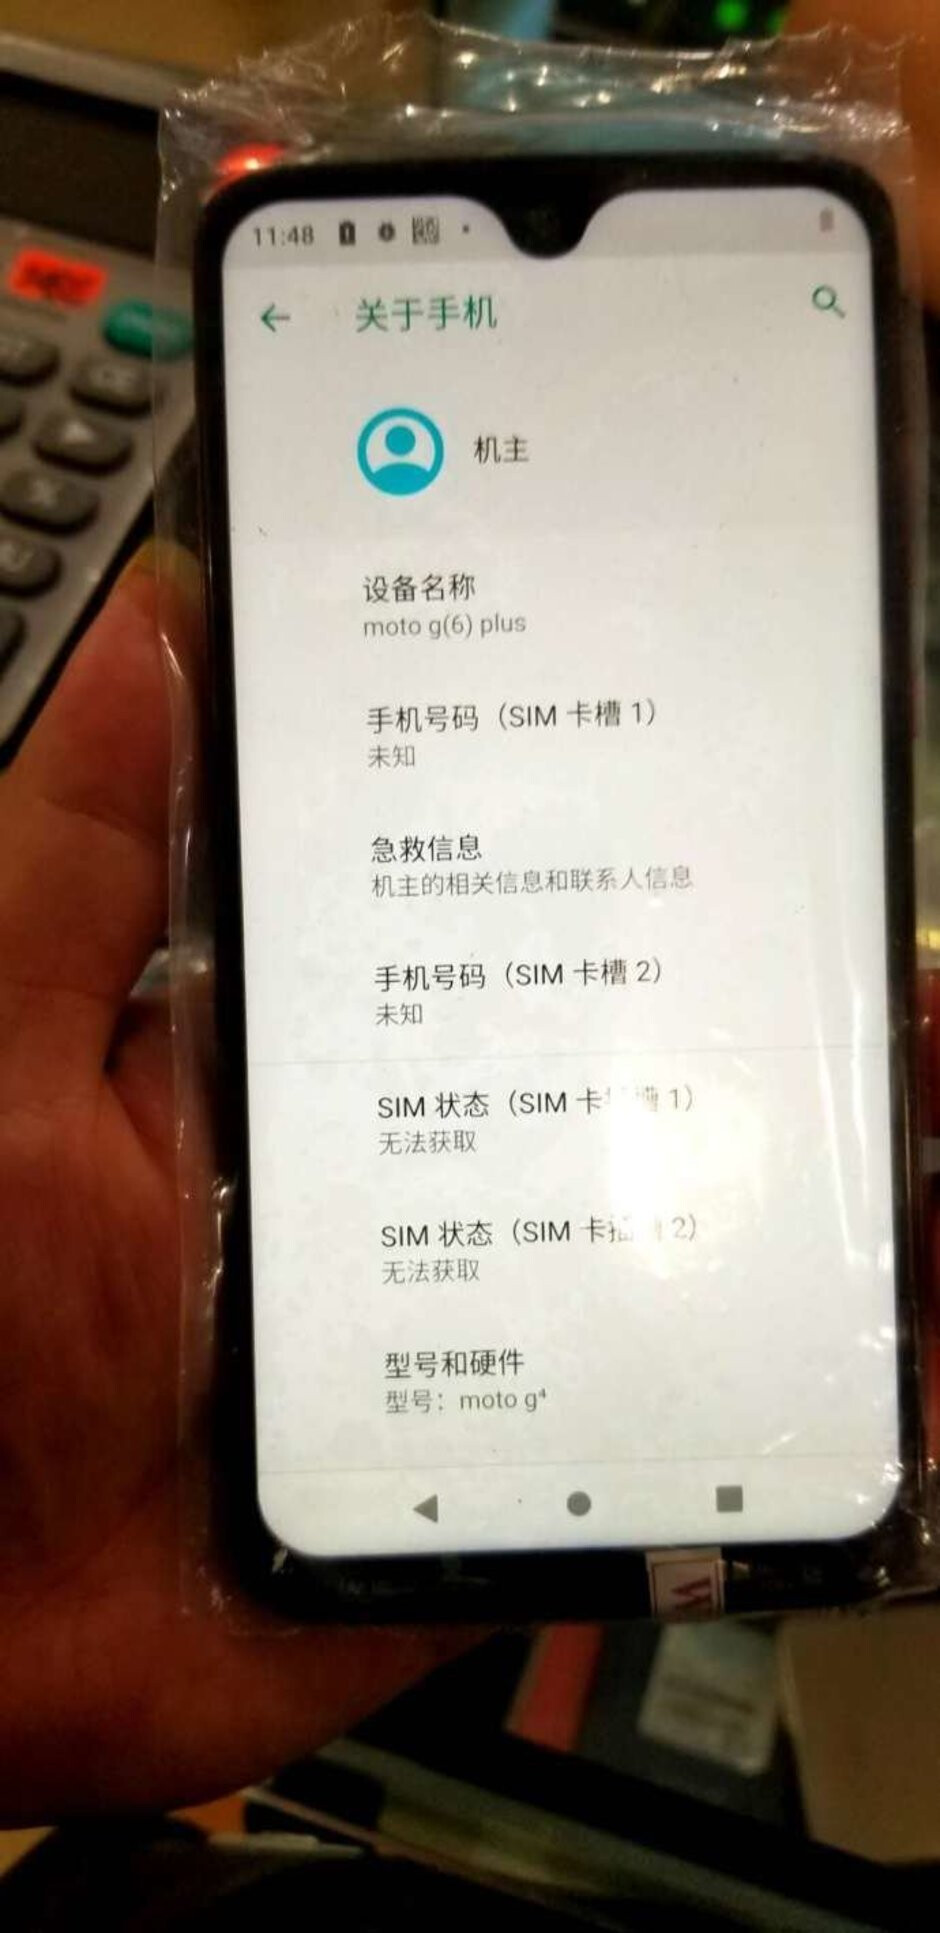 Moto G6 Plus with Snapdragon 660 - Alleged Motorola One and Moto G6 Plus with notch leaked in live pictures